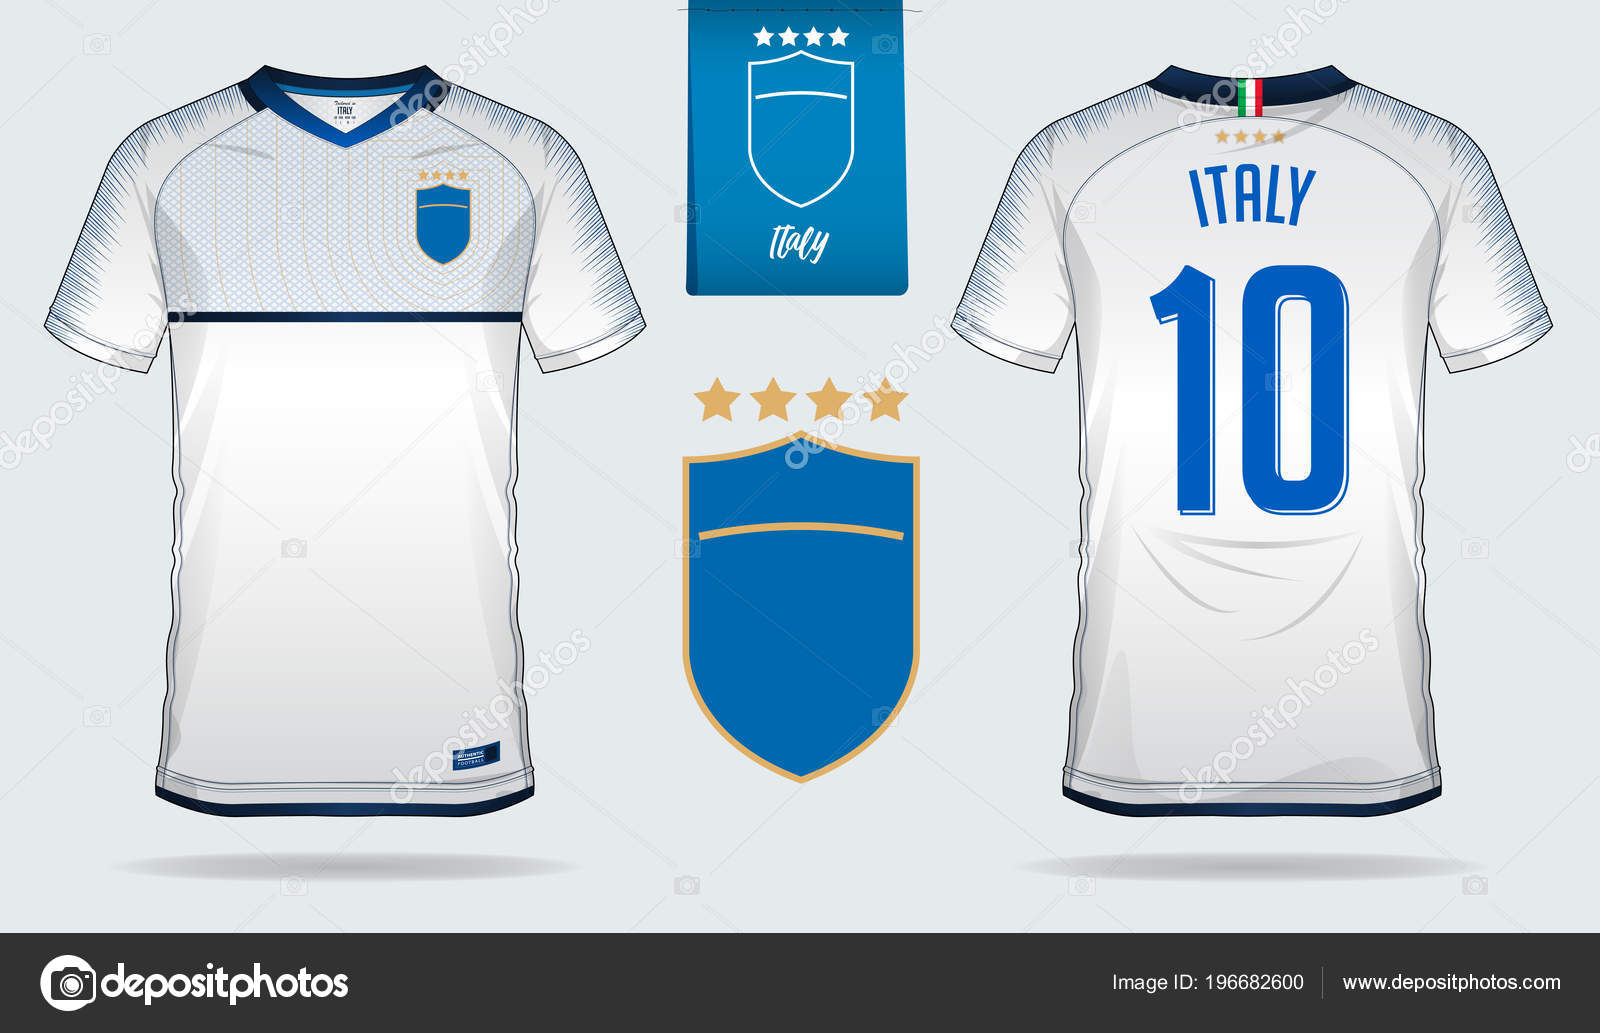 d3d8e016b Set of soccer jersey or football kit template design for Italy national football  team. Front and back view soccer uniform. Football t shirt mock up. Vector  ...